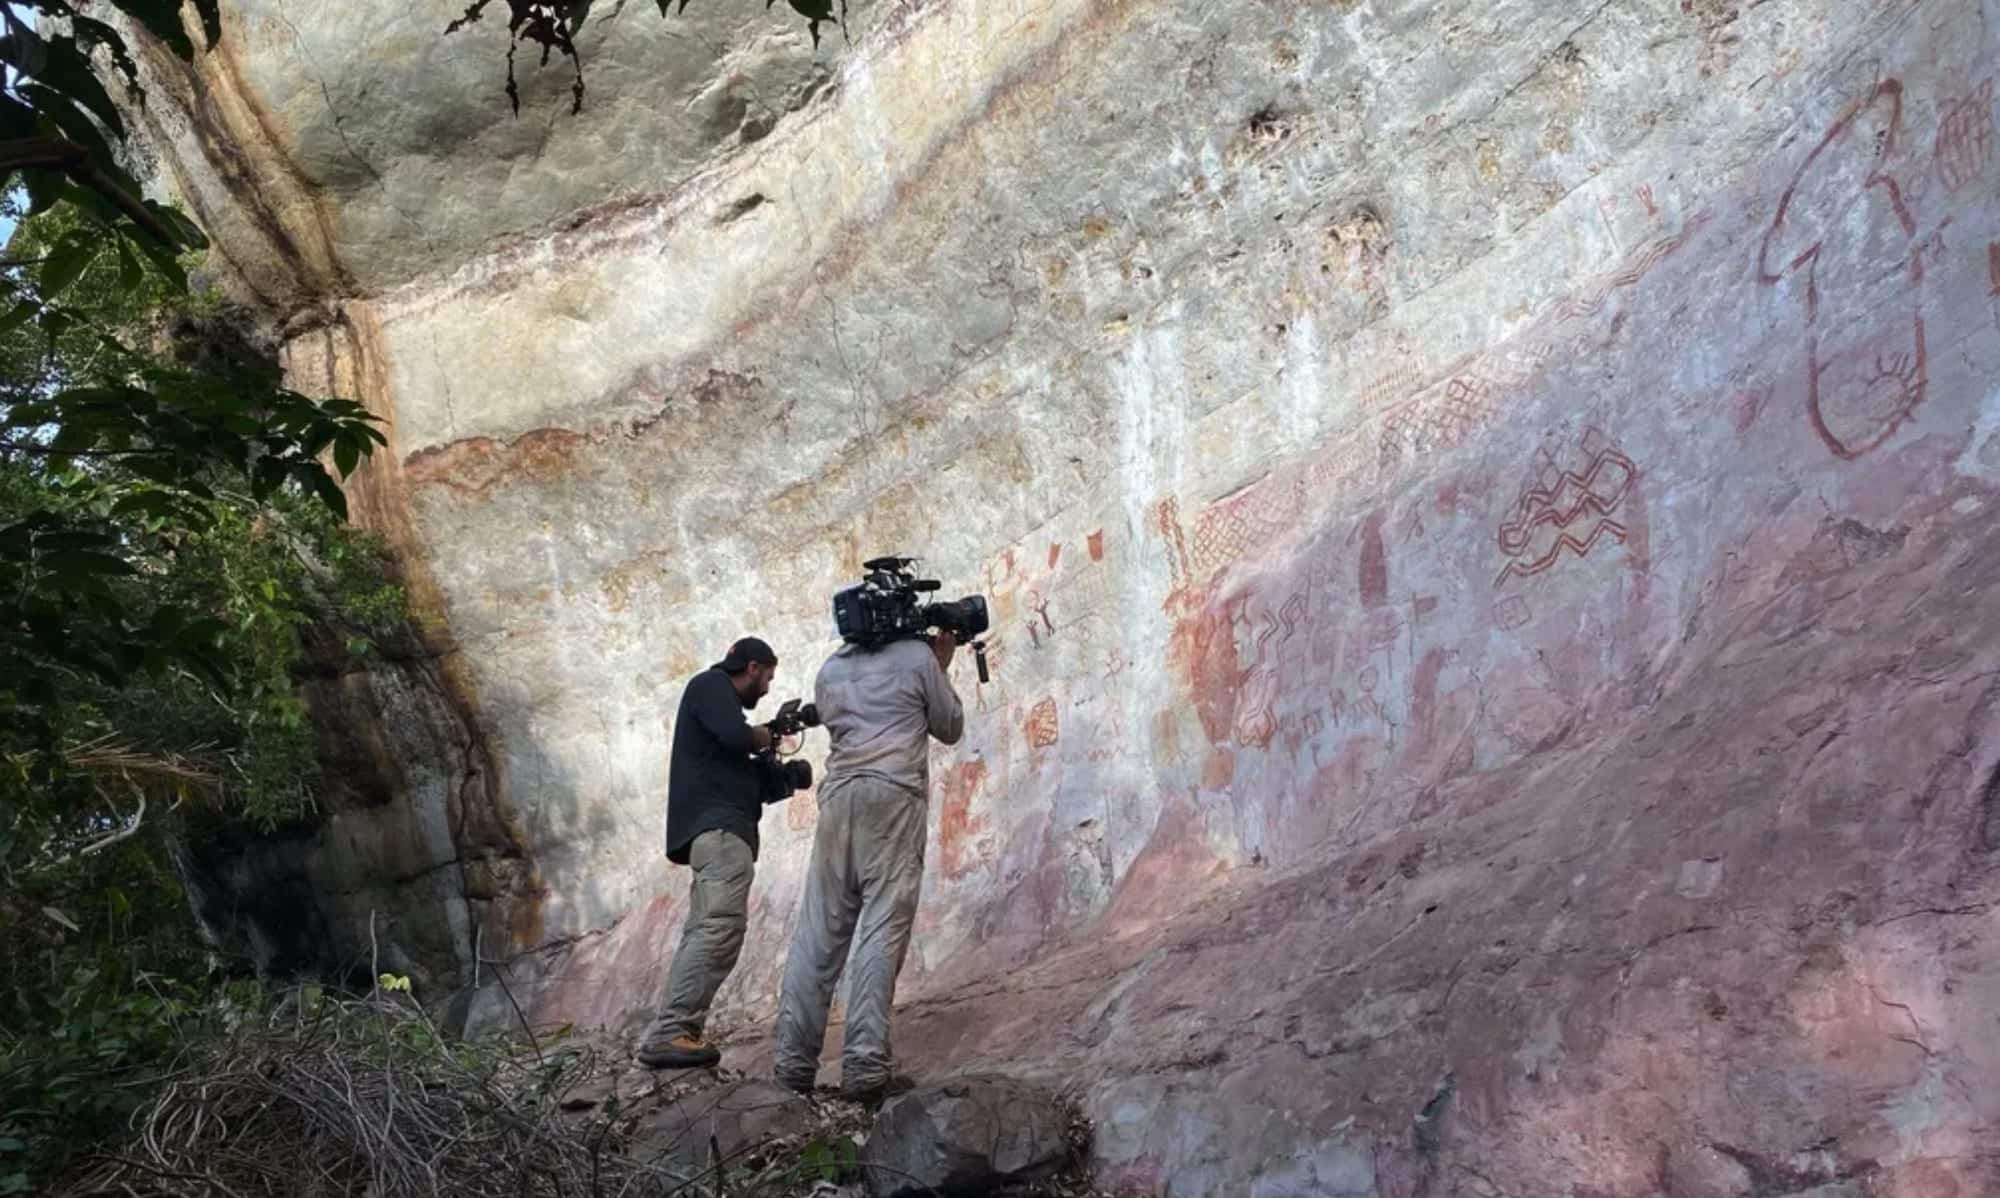 Drones needed to study thousands of prehistoric paintings in Amazon forest